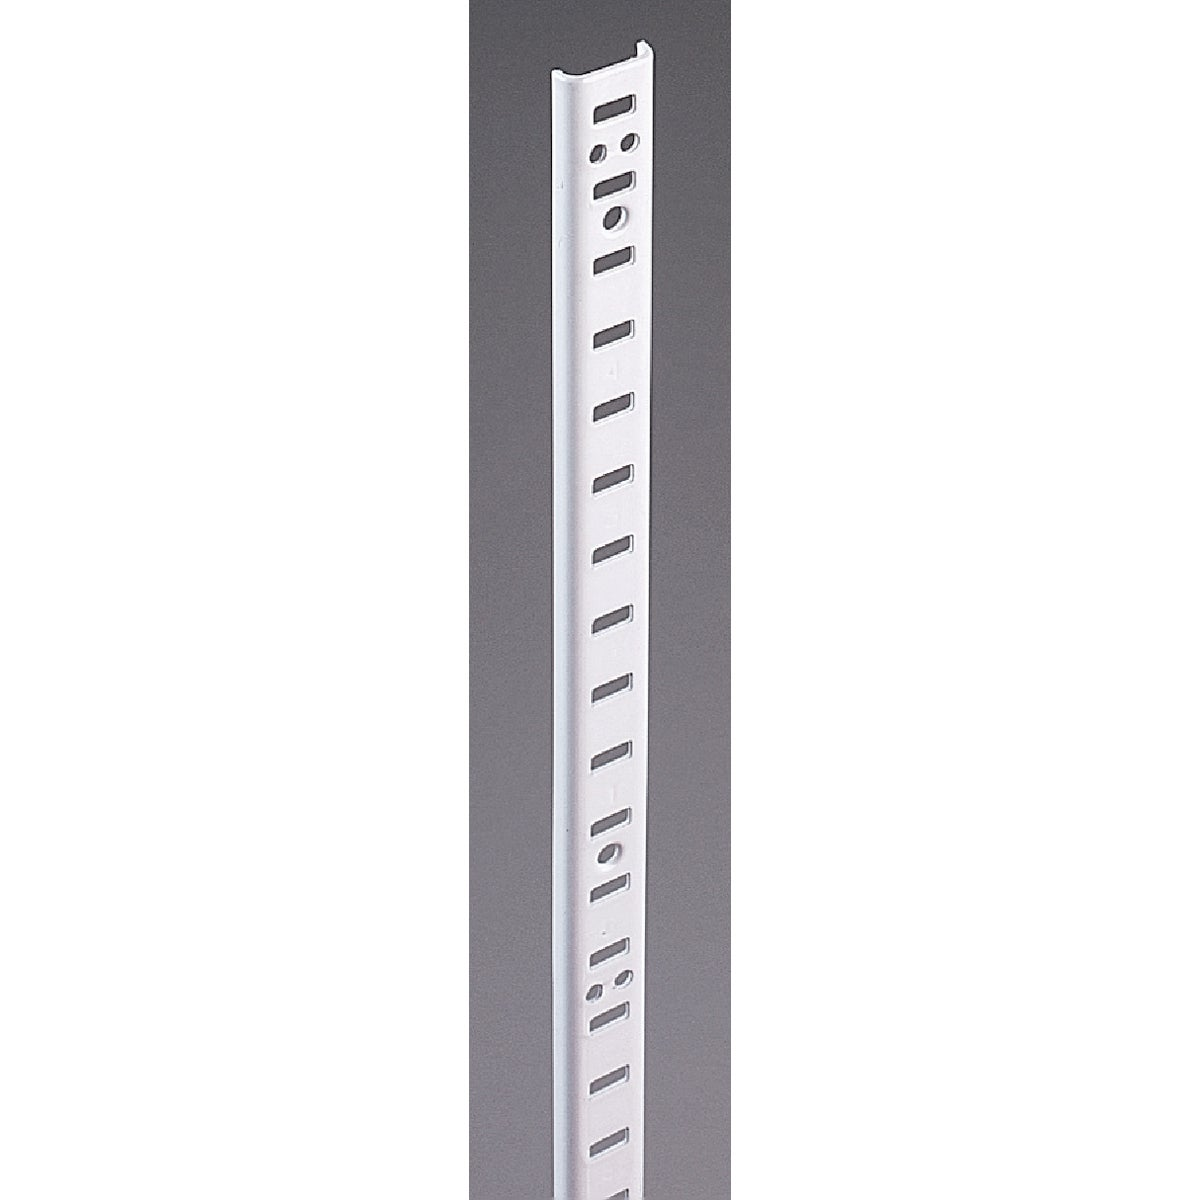 "ZN 36"" PILASTER STANDARD - PK255ZC 36 by Knape & Vogt Mfg Co"